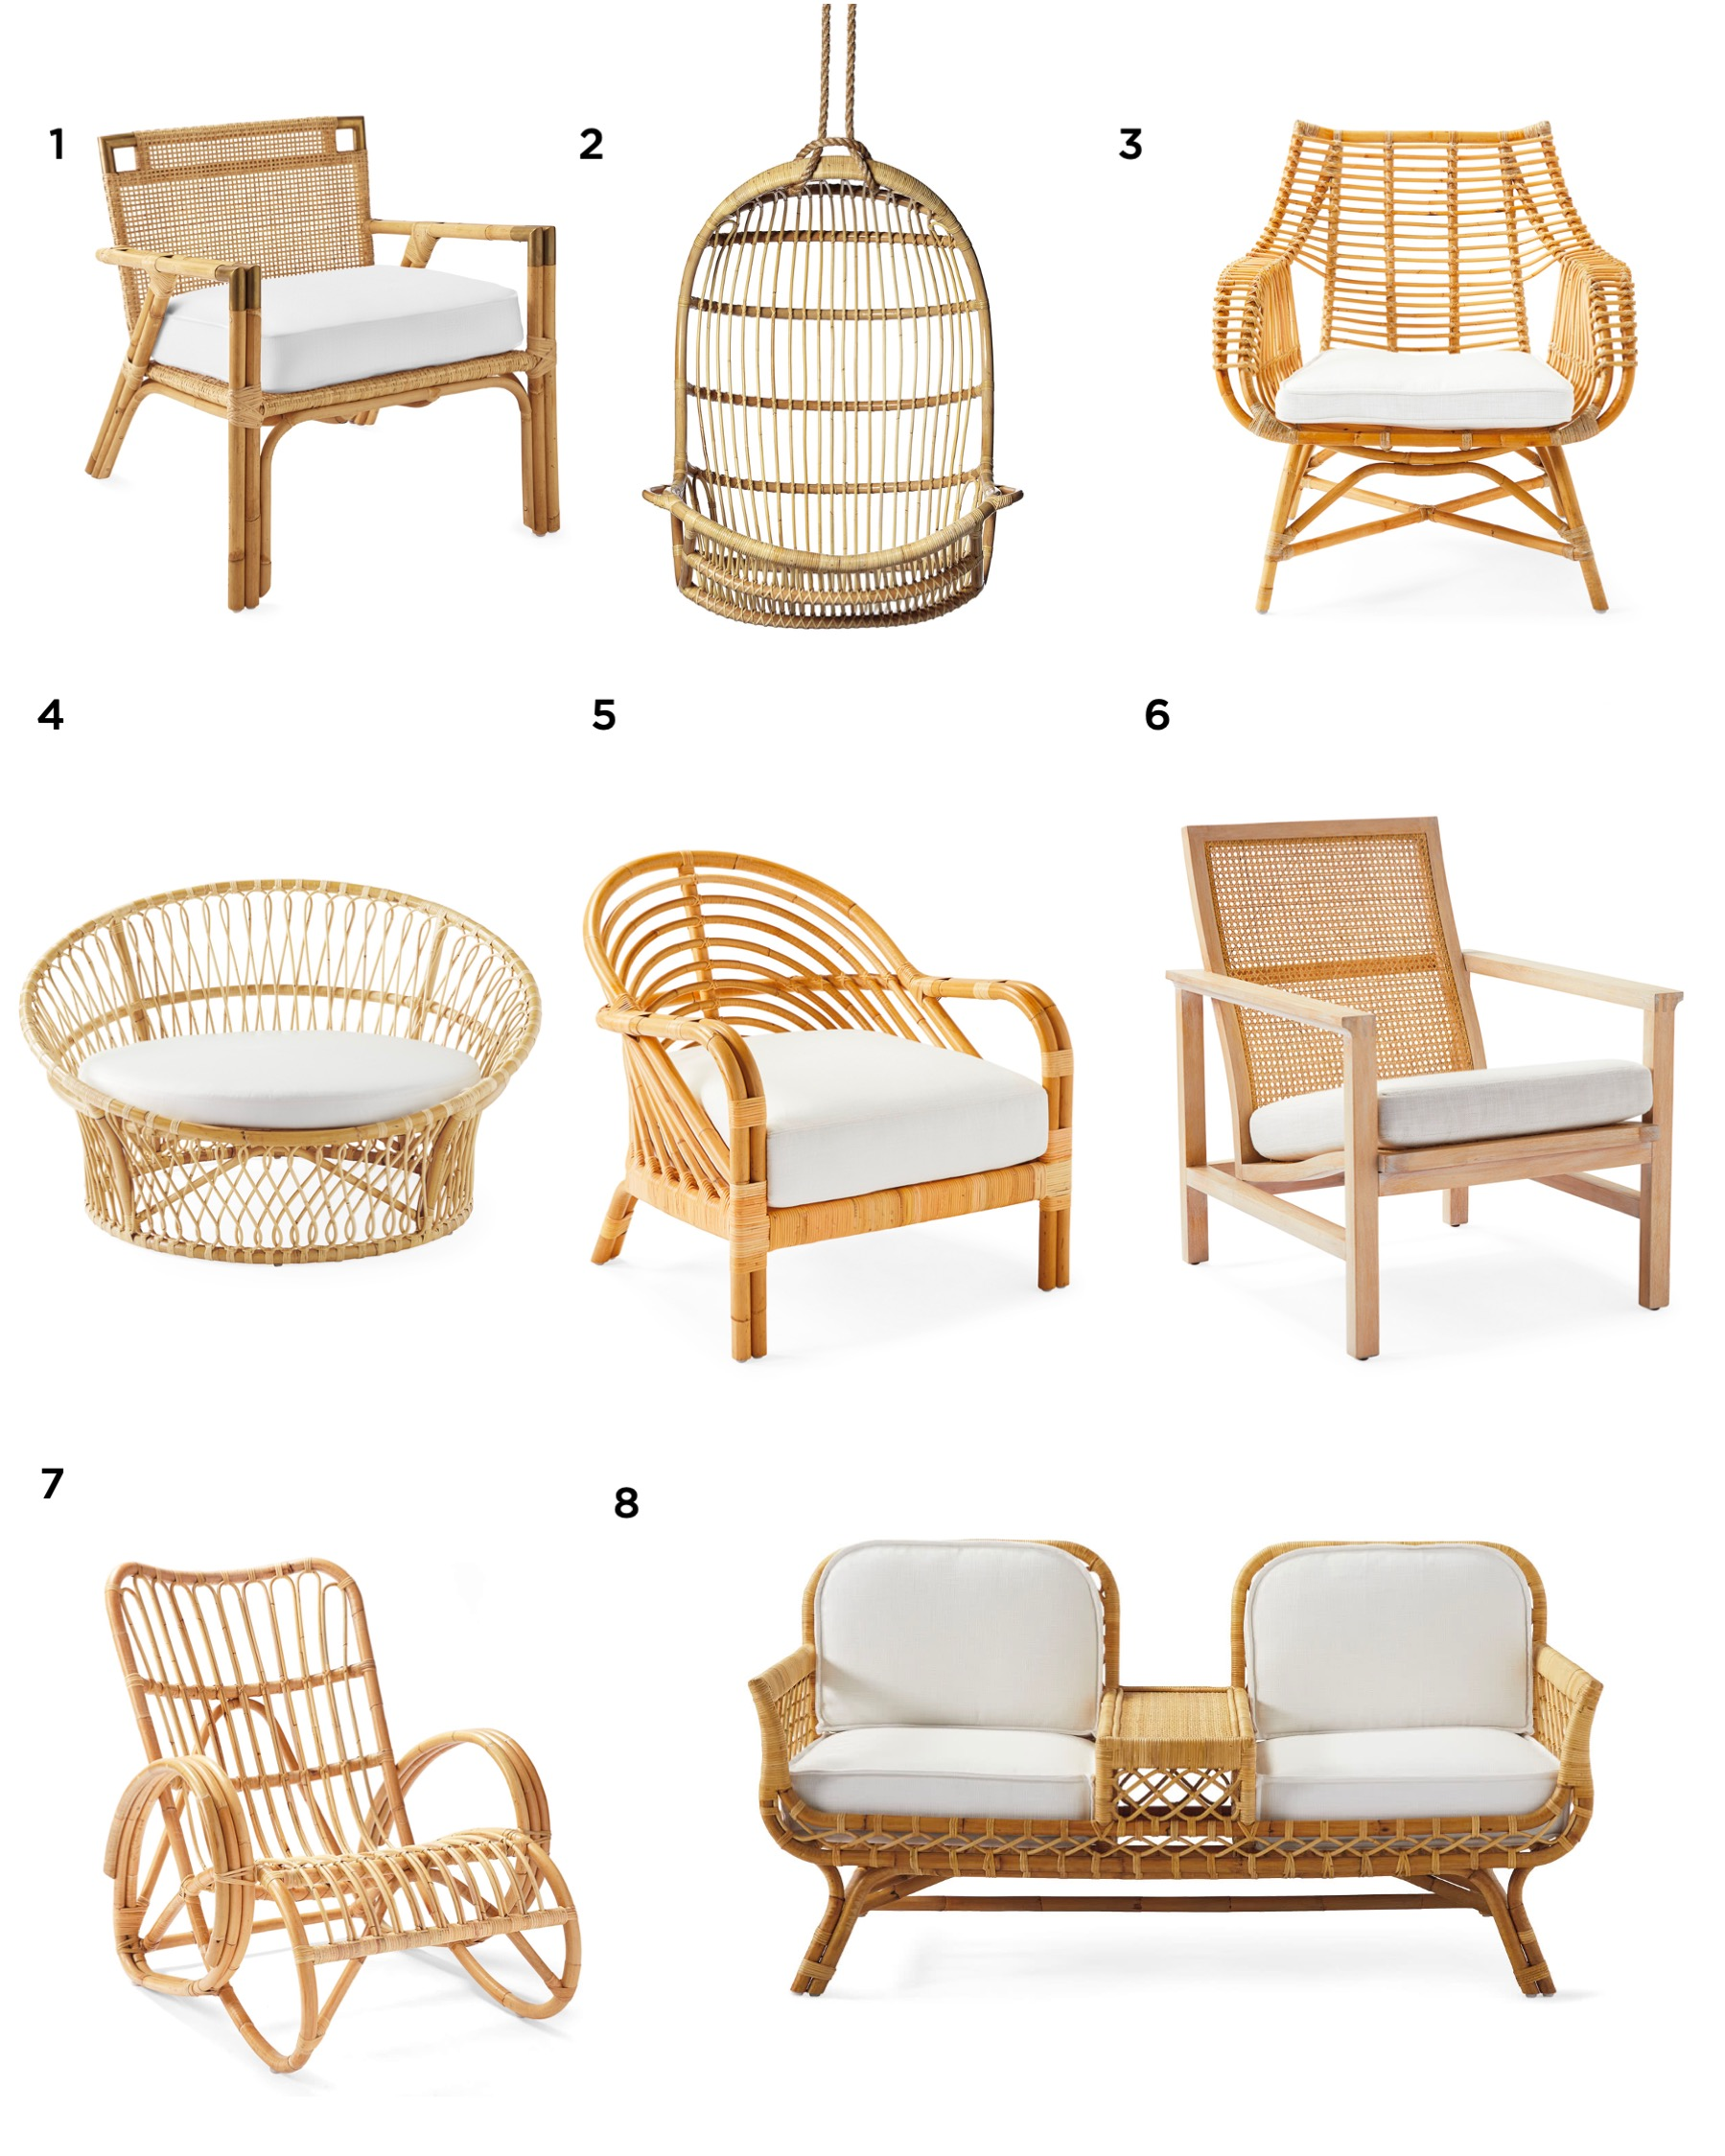 all the pretty rattan chairs from Serena & Lily, specially prices this Labor Day weekend! #rattanchair #hangingchair #modernboho #bohostyle #outdoorfurniture #interiordesign